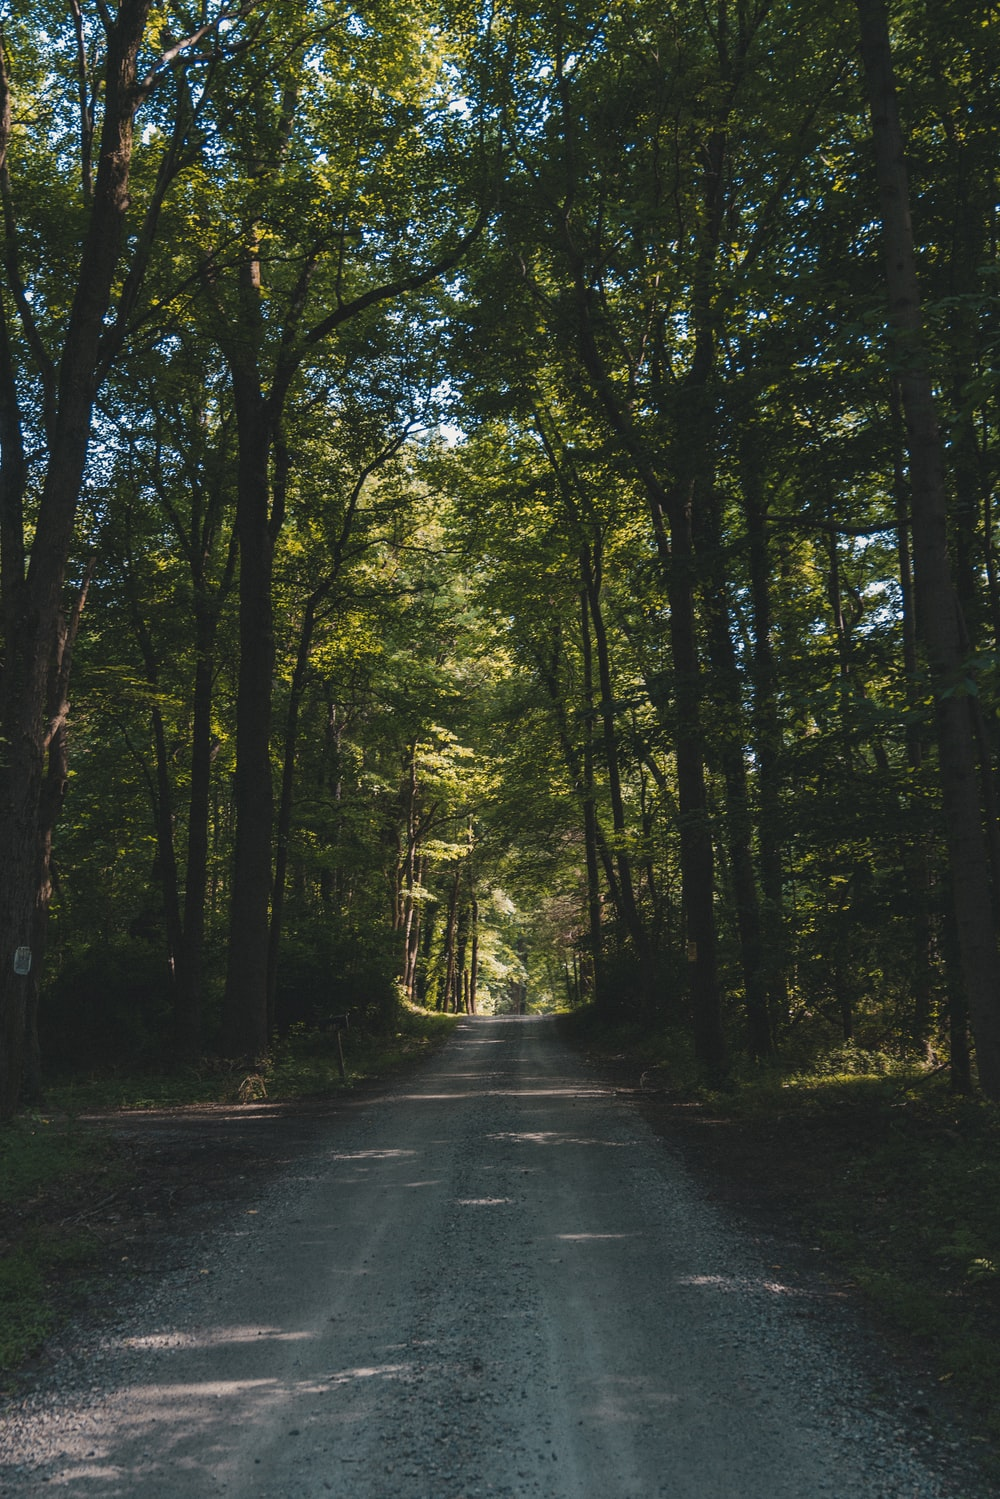 photo of road surrounded by trees during daytyime